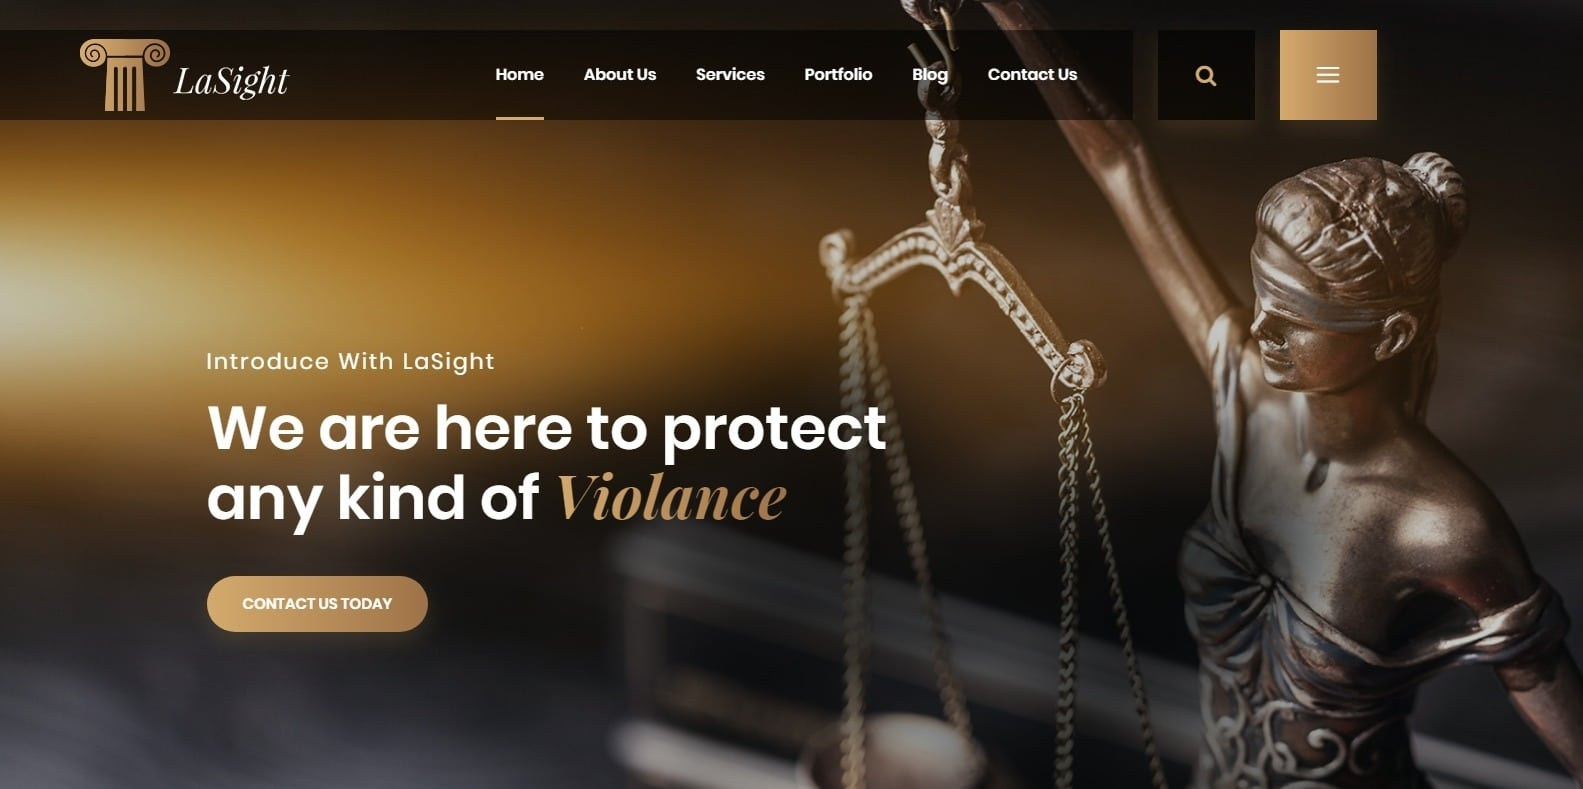 lasight-attorney-website-template